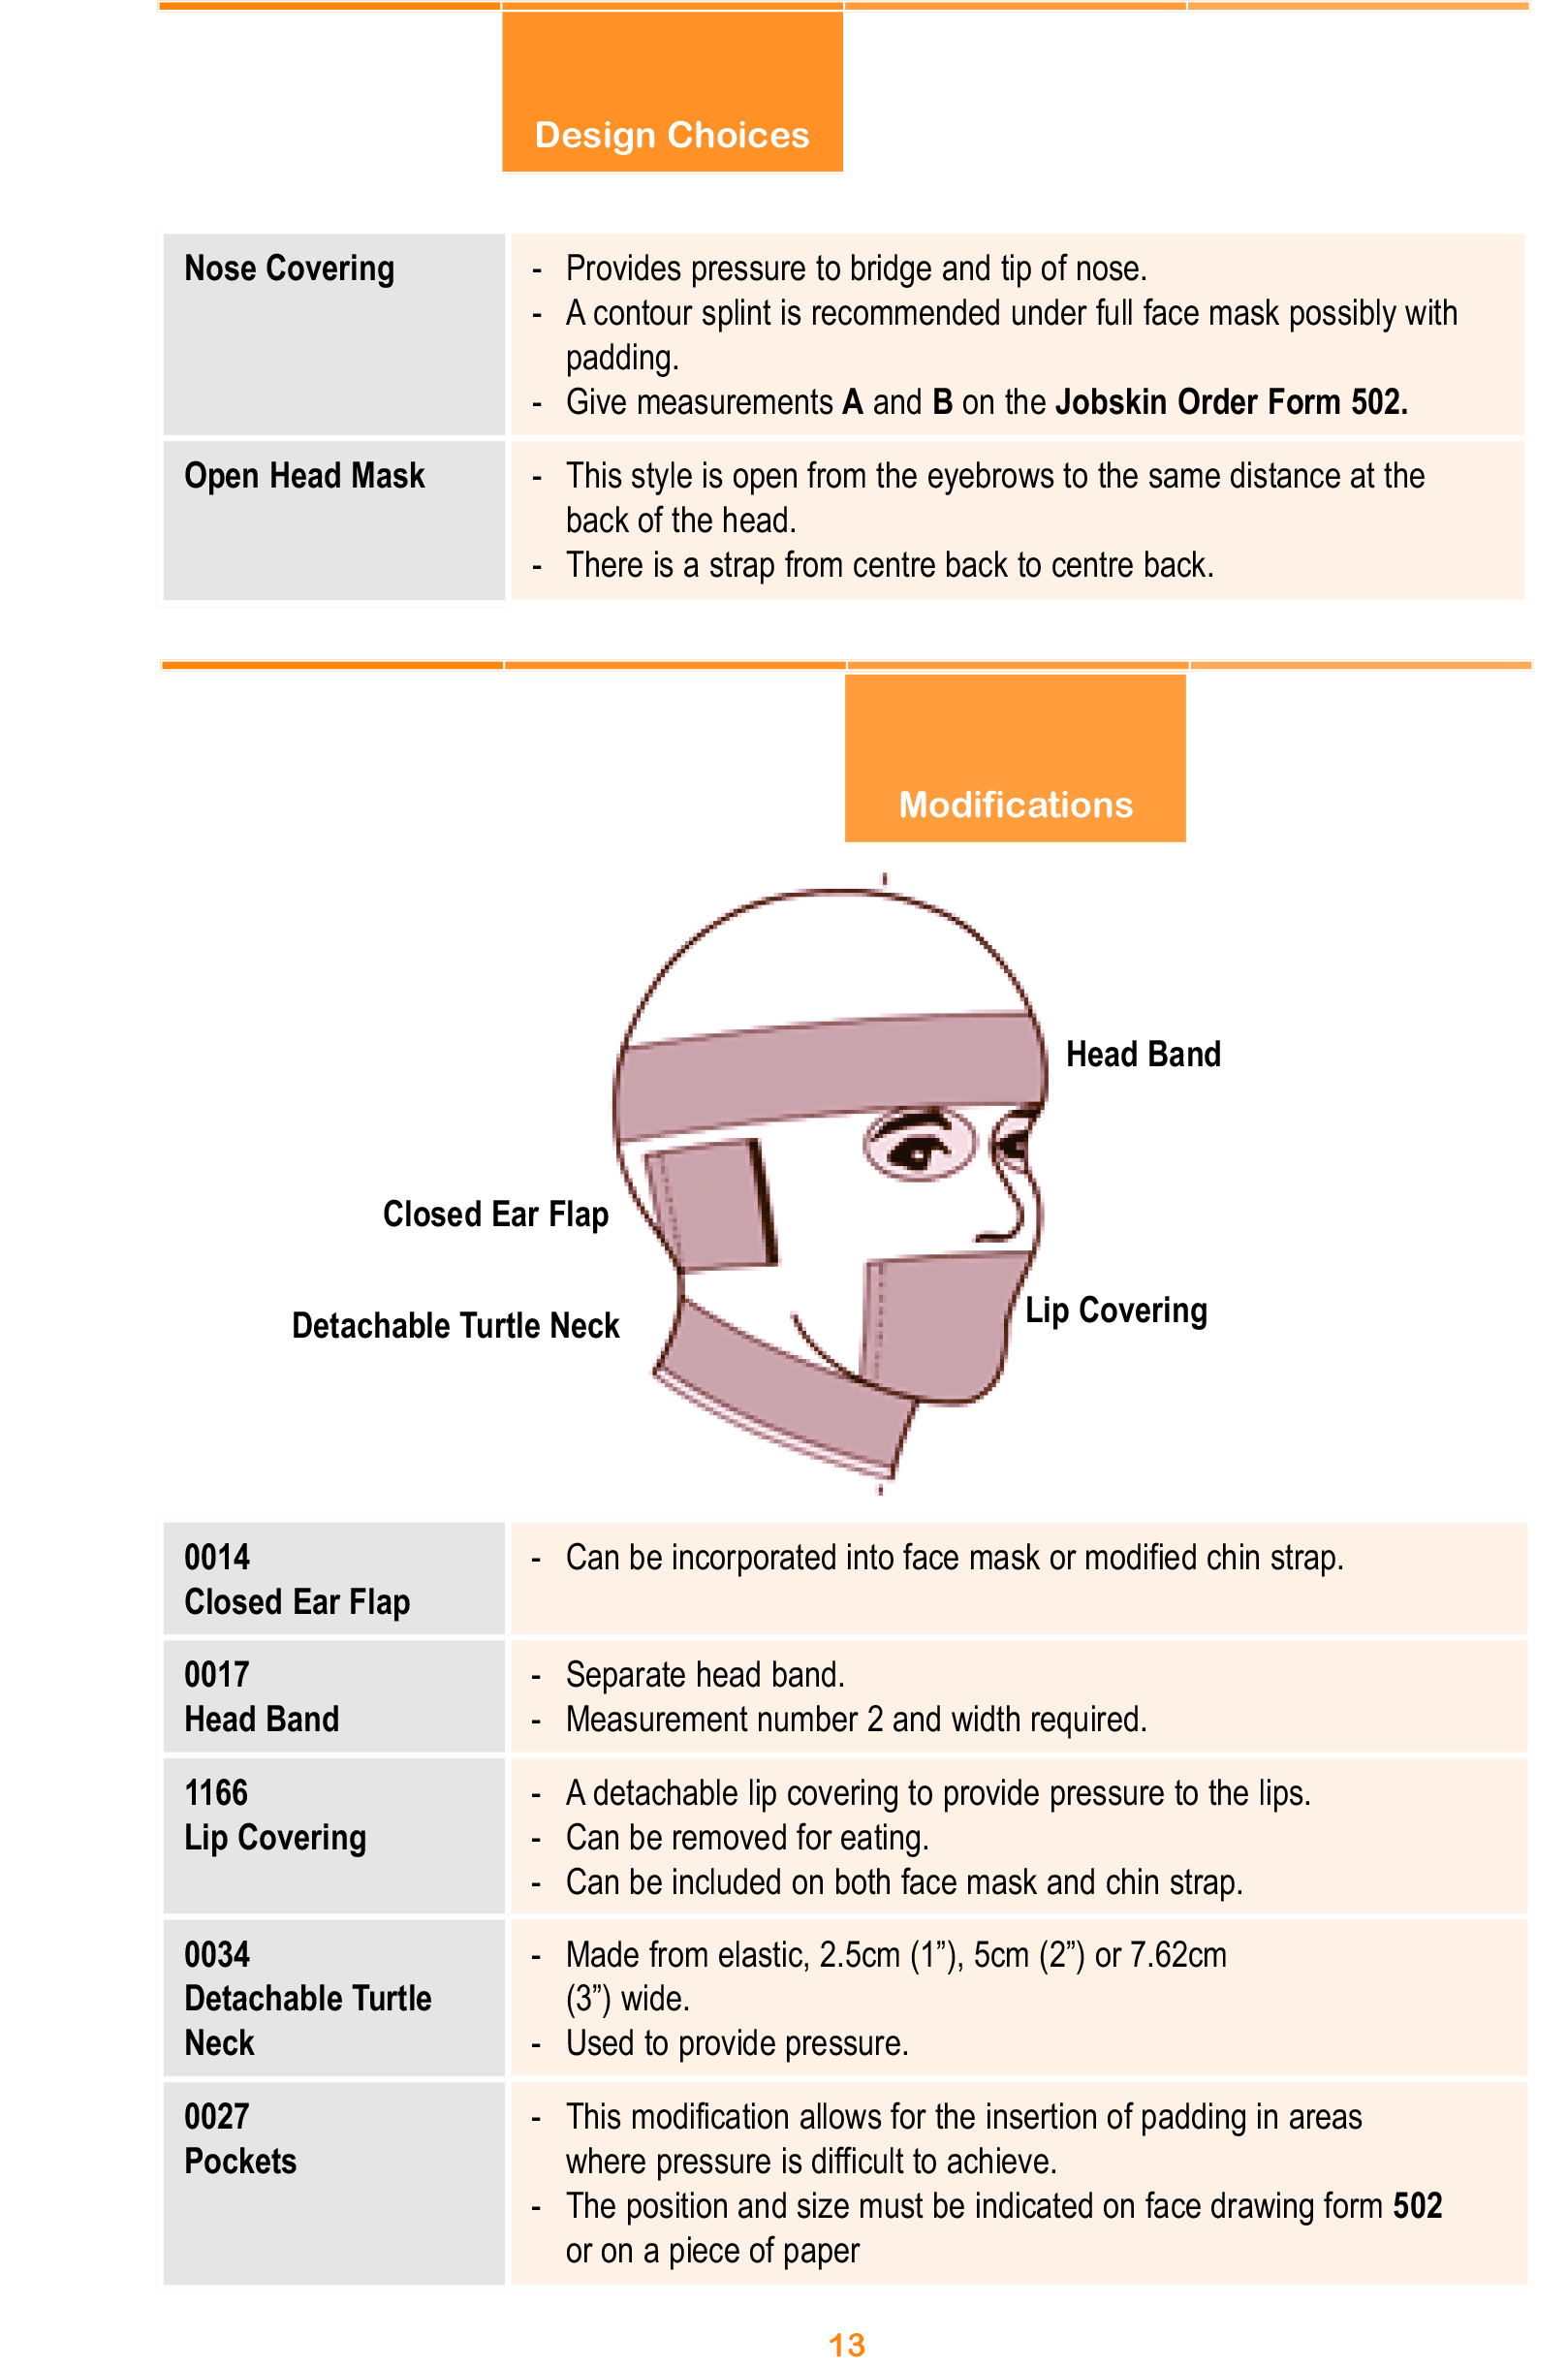 Head and neck design modifications